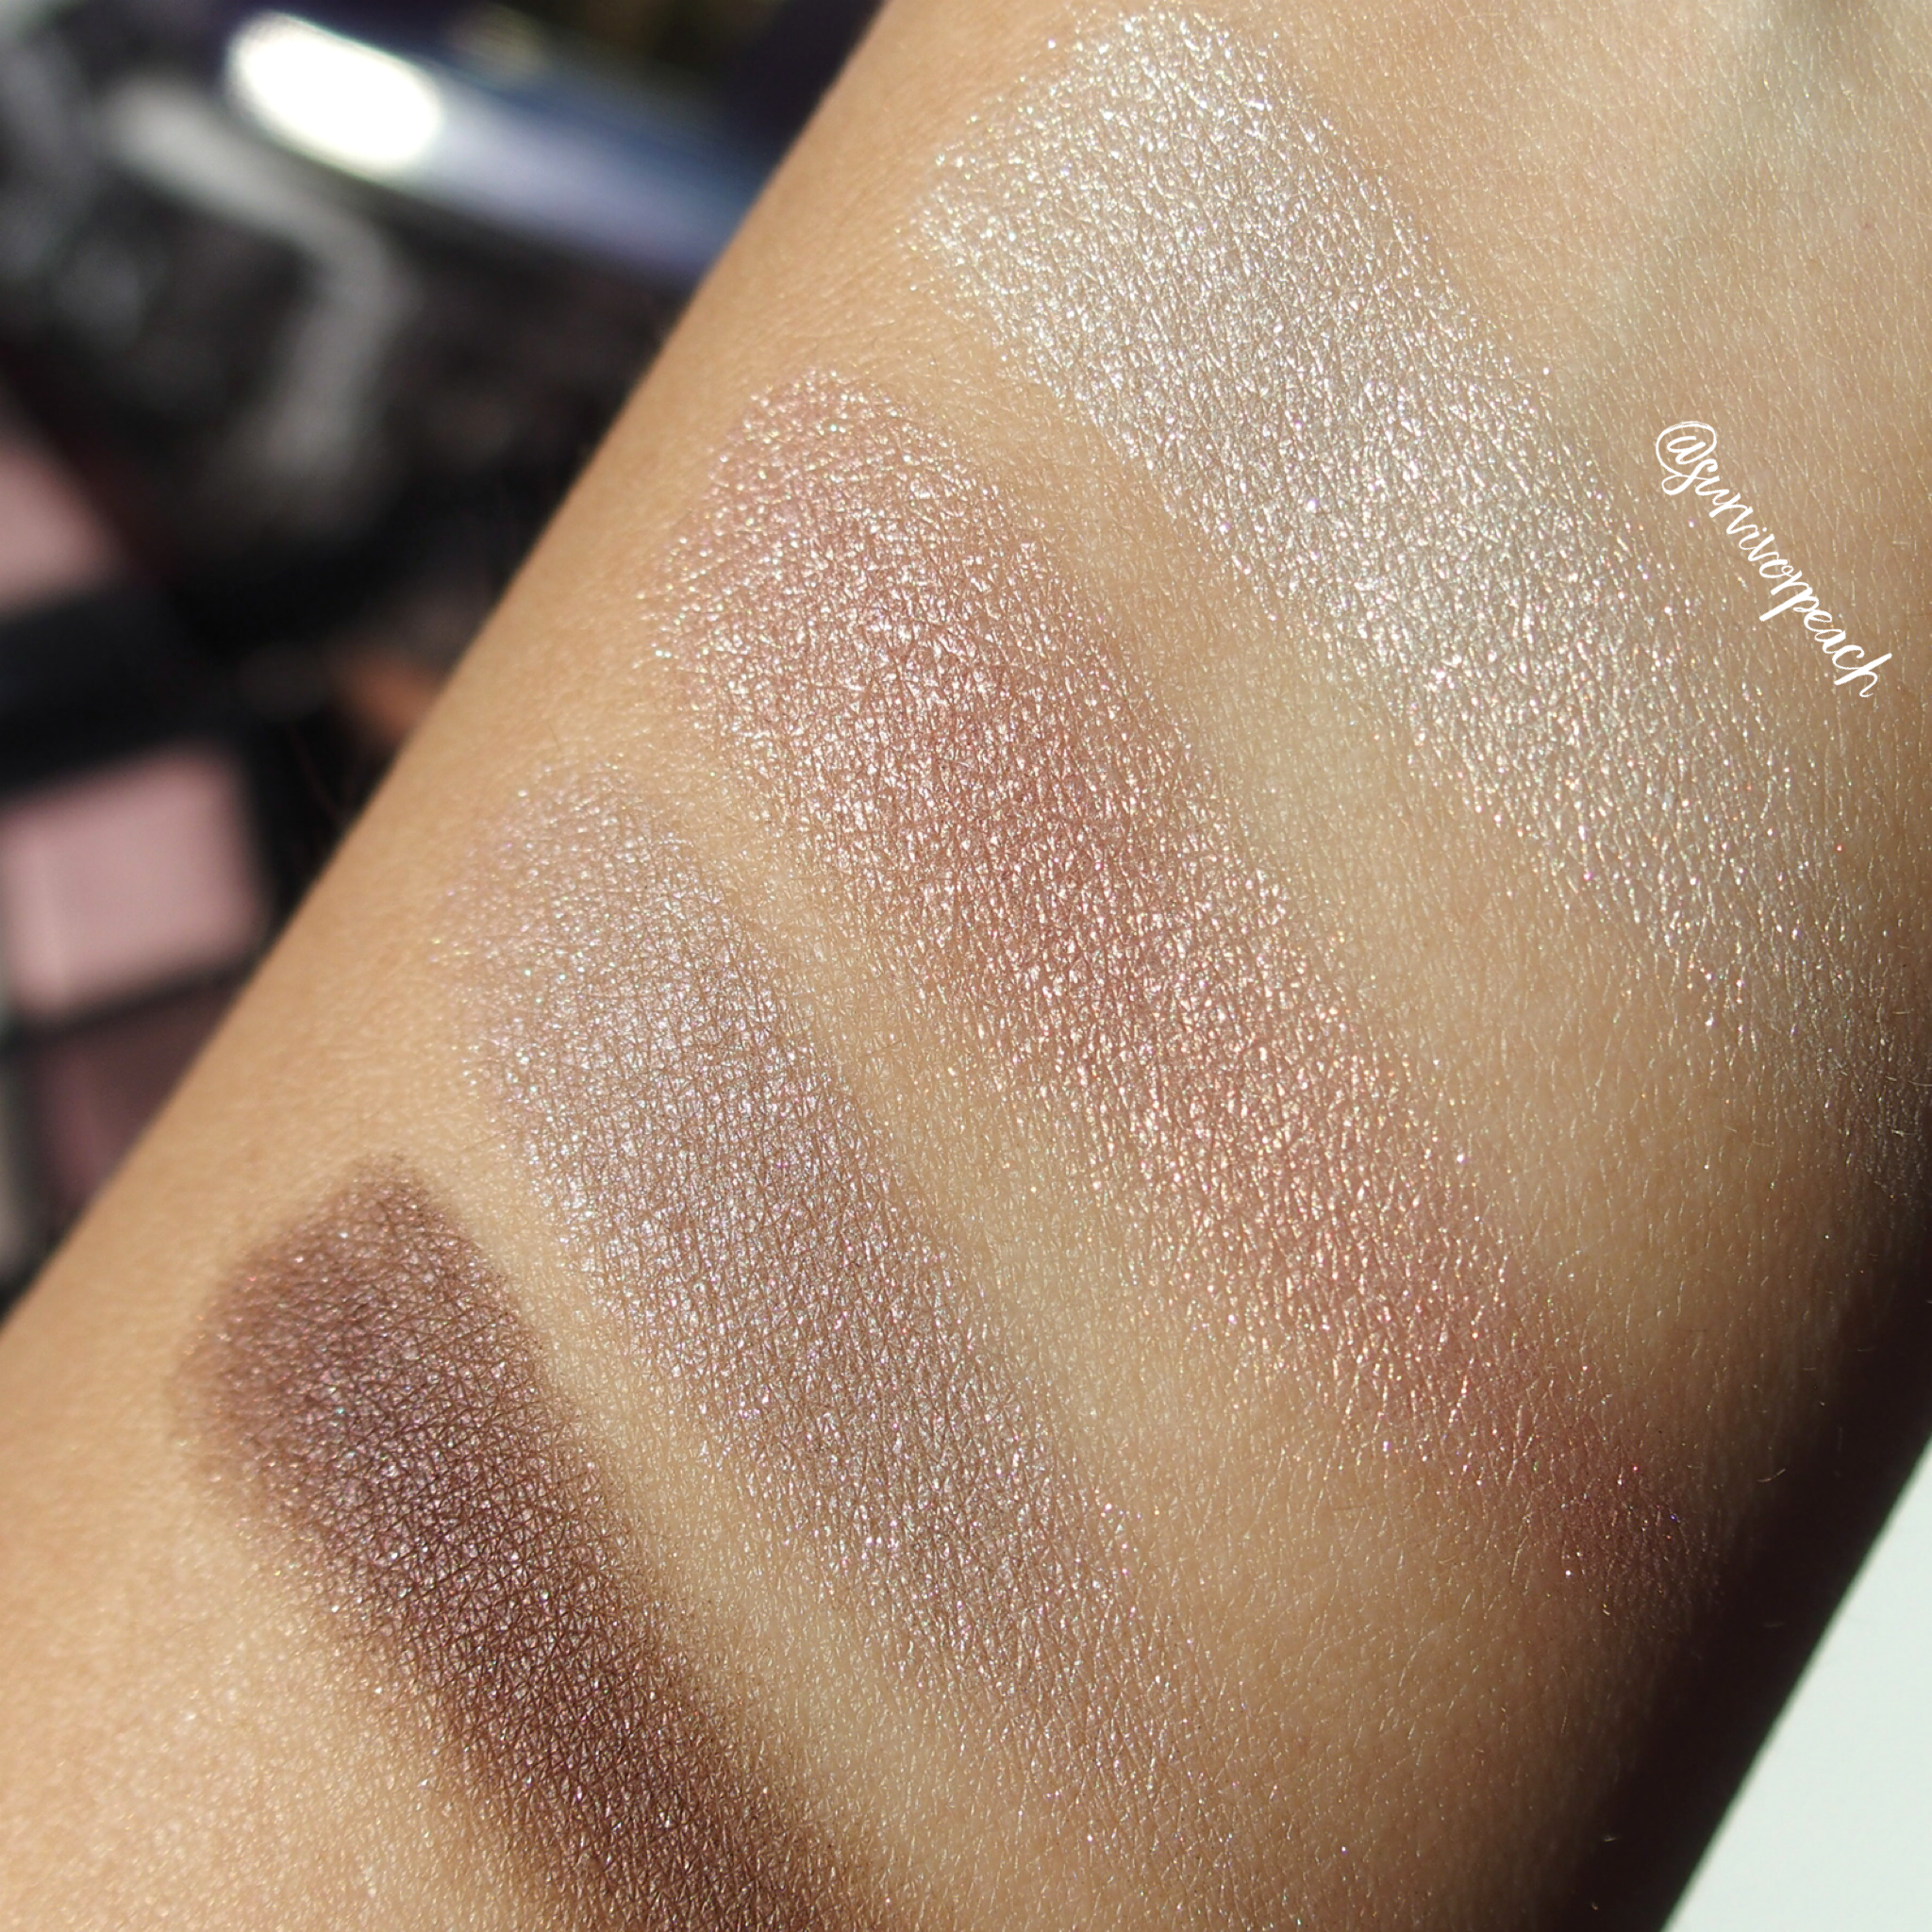 Swatches of the Tomford Virgin Orchid Eyeshadow Quad